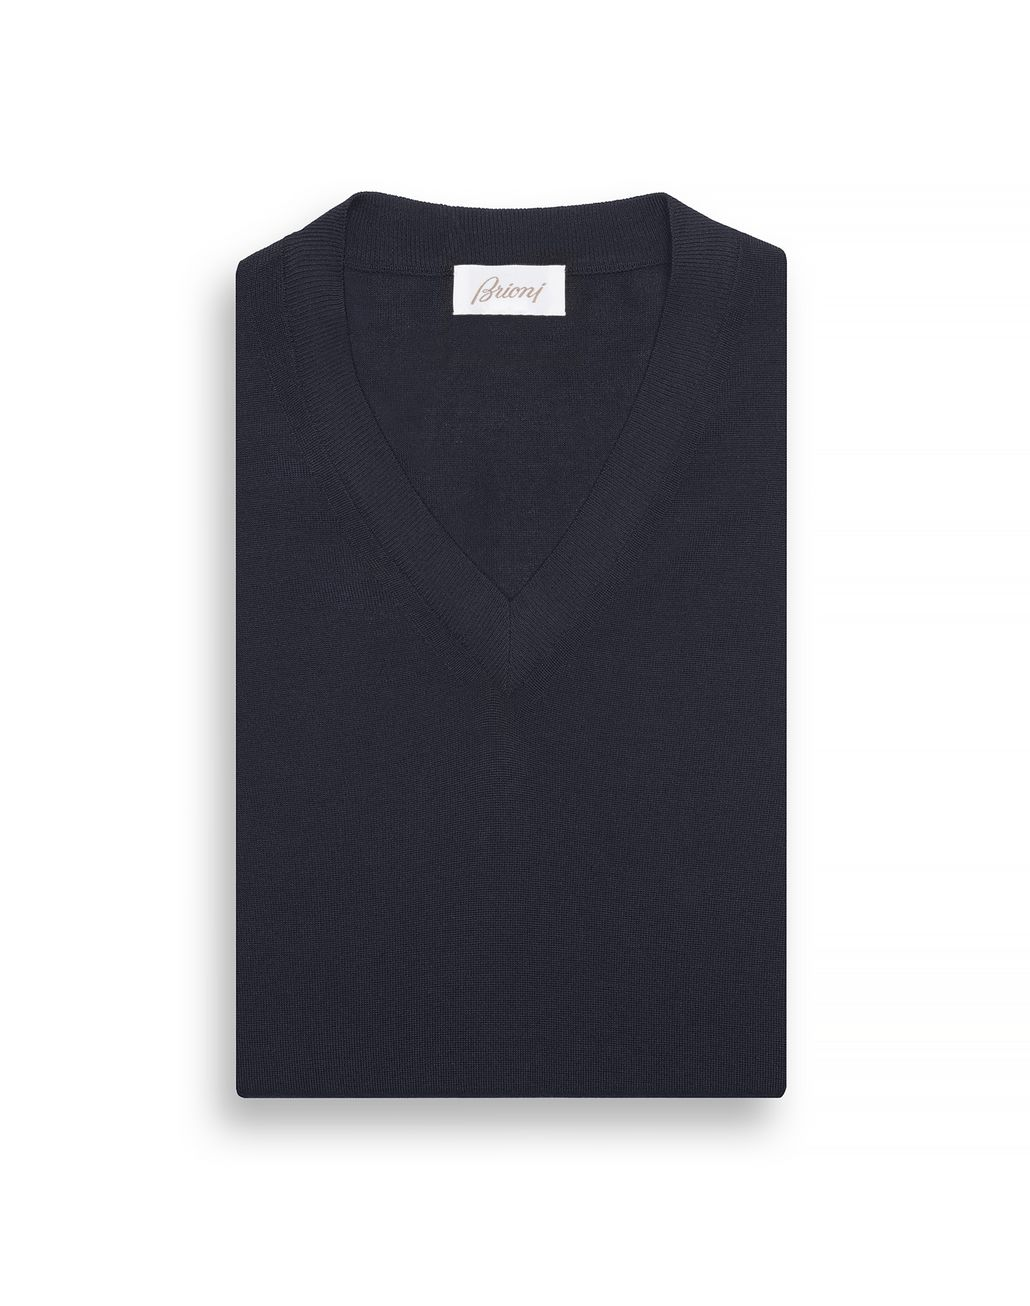 BRIONI Navy Blue V-Neck Sweater Knitwear Man e